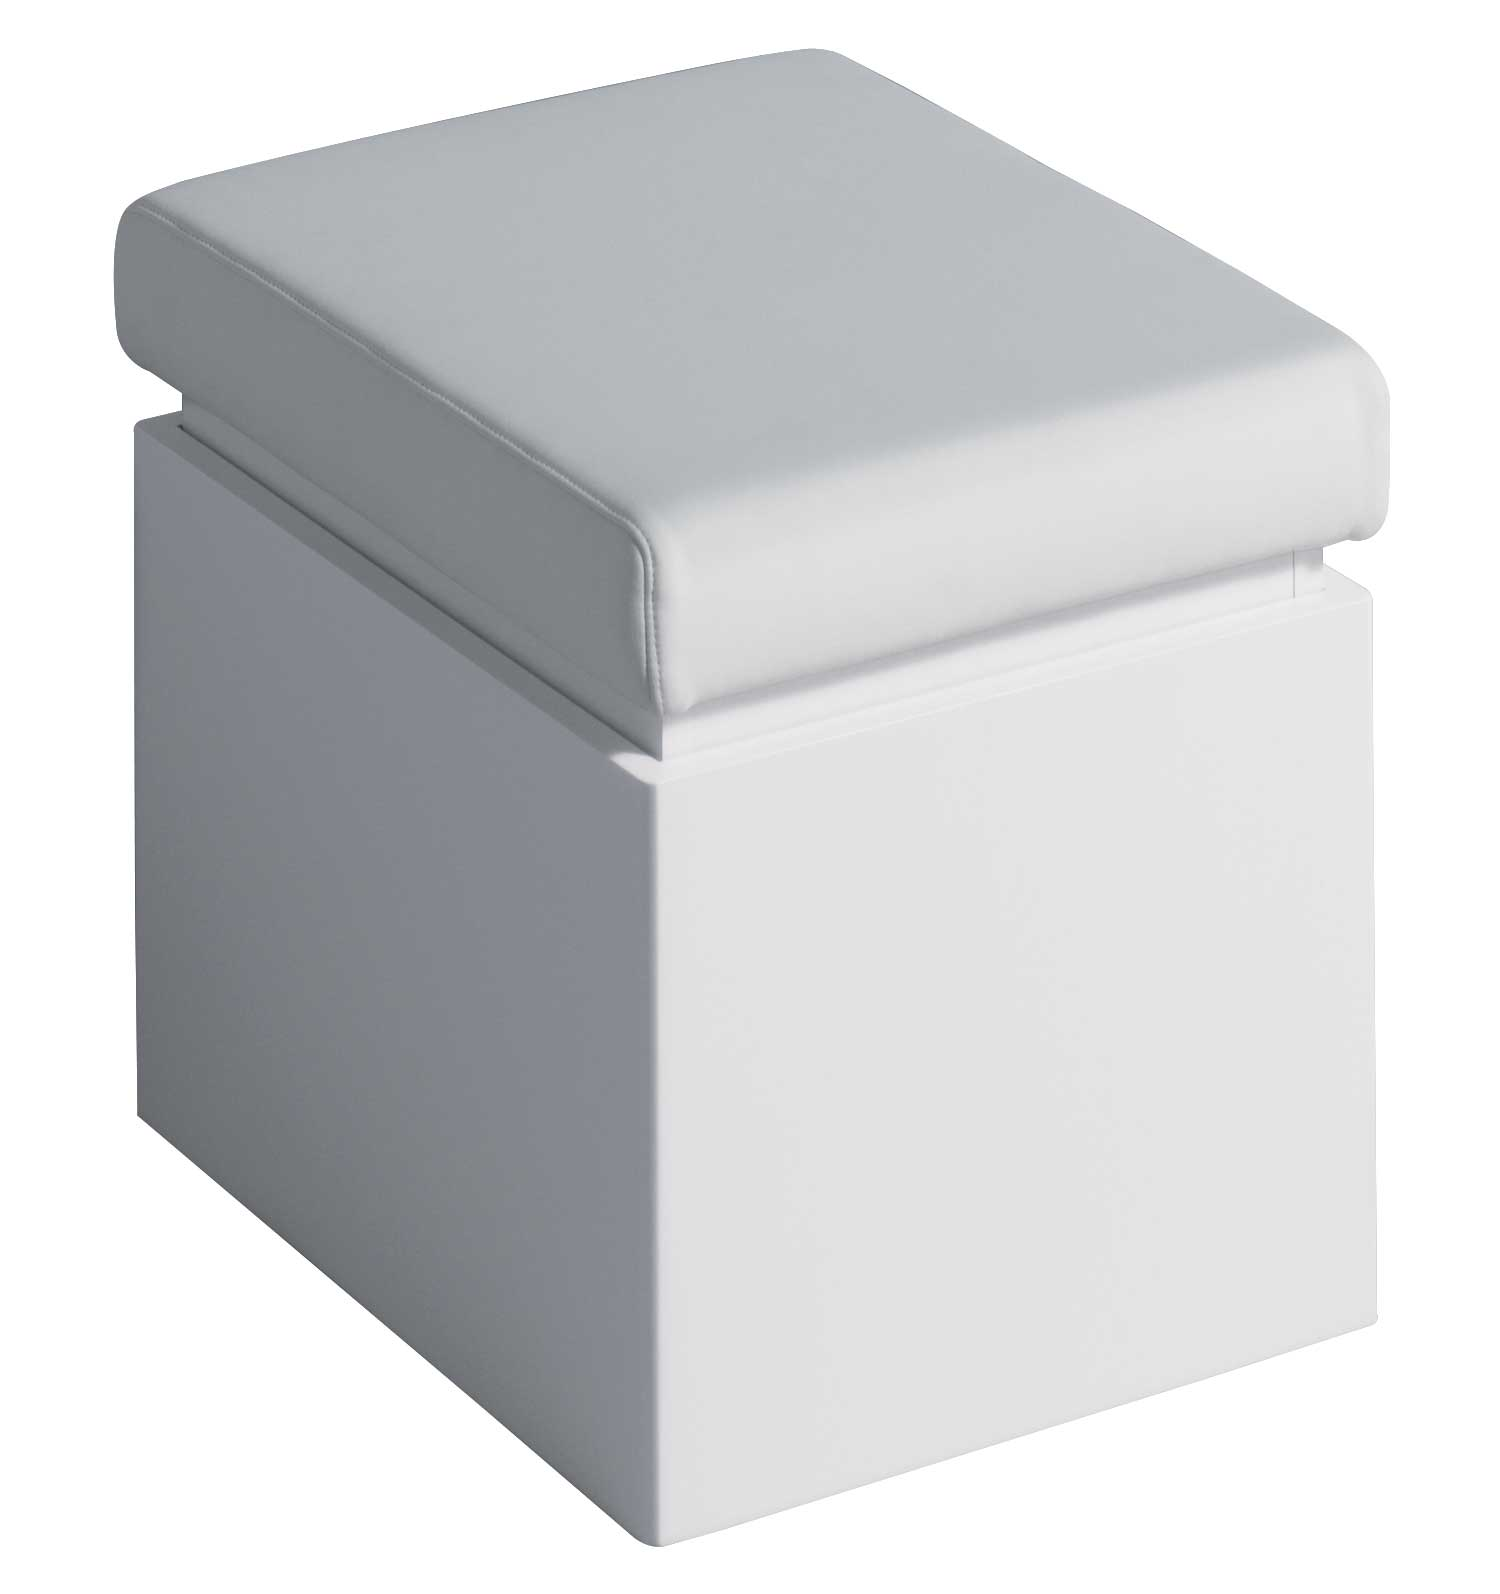 Amazing Bathroom Storage Unit White Wood Tongue Amp Groove From Our Bathroom